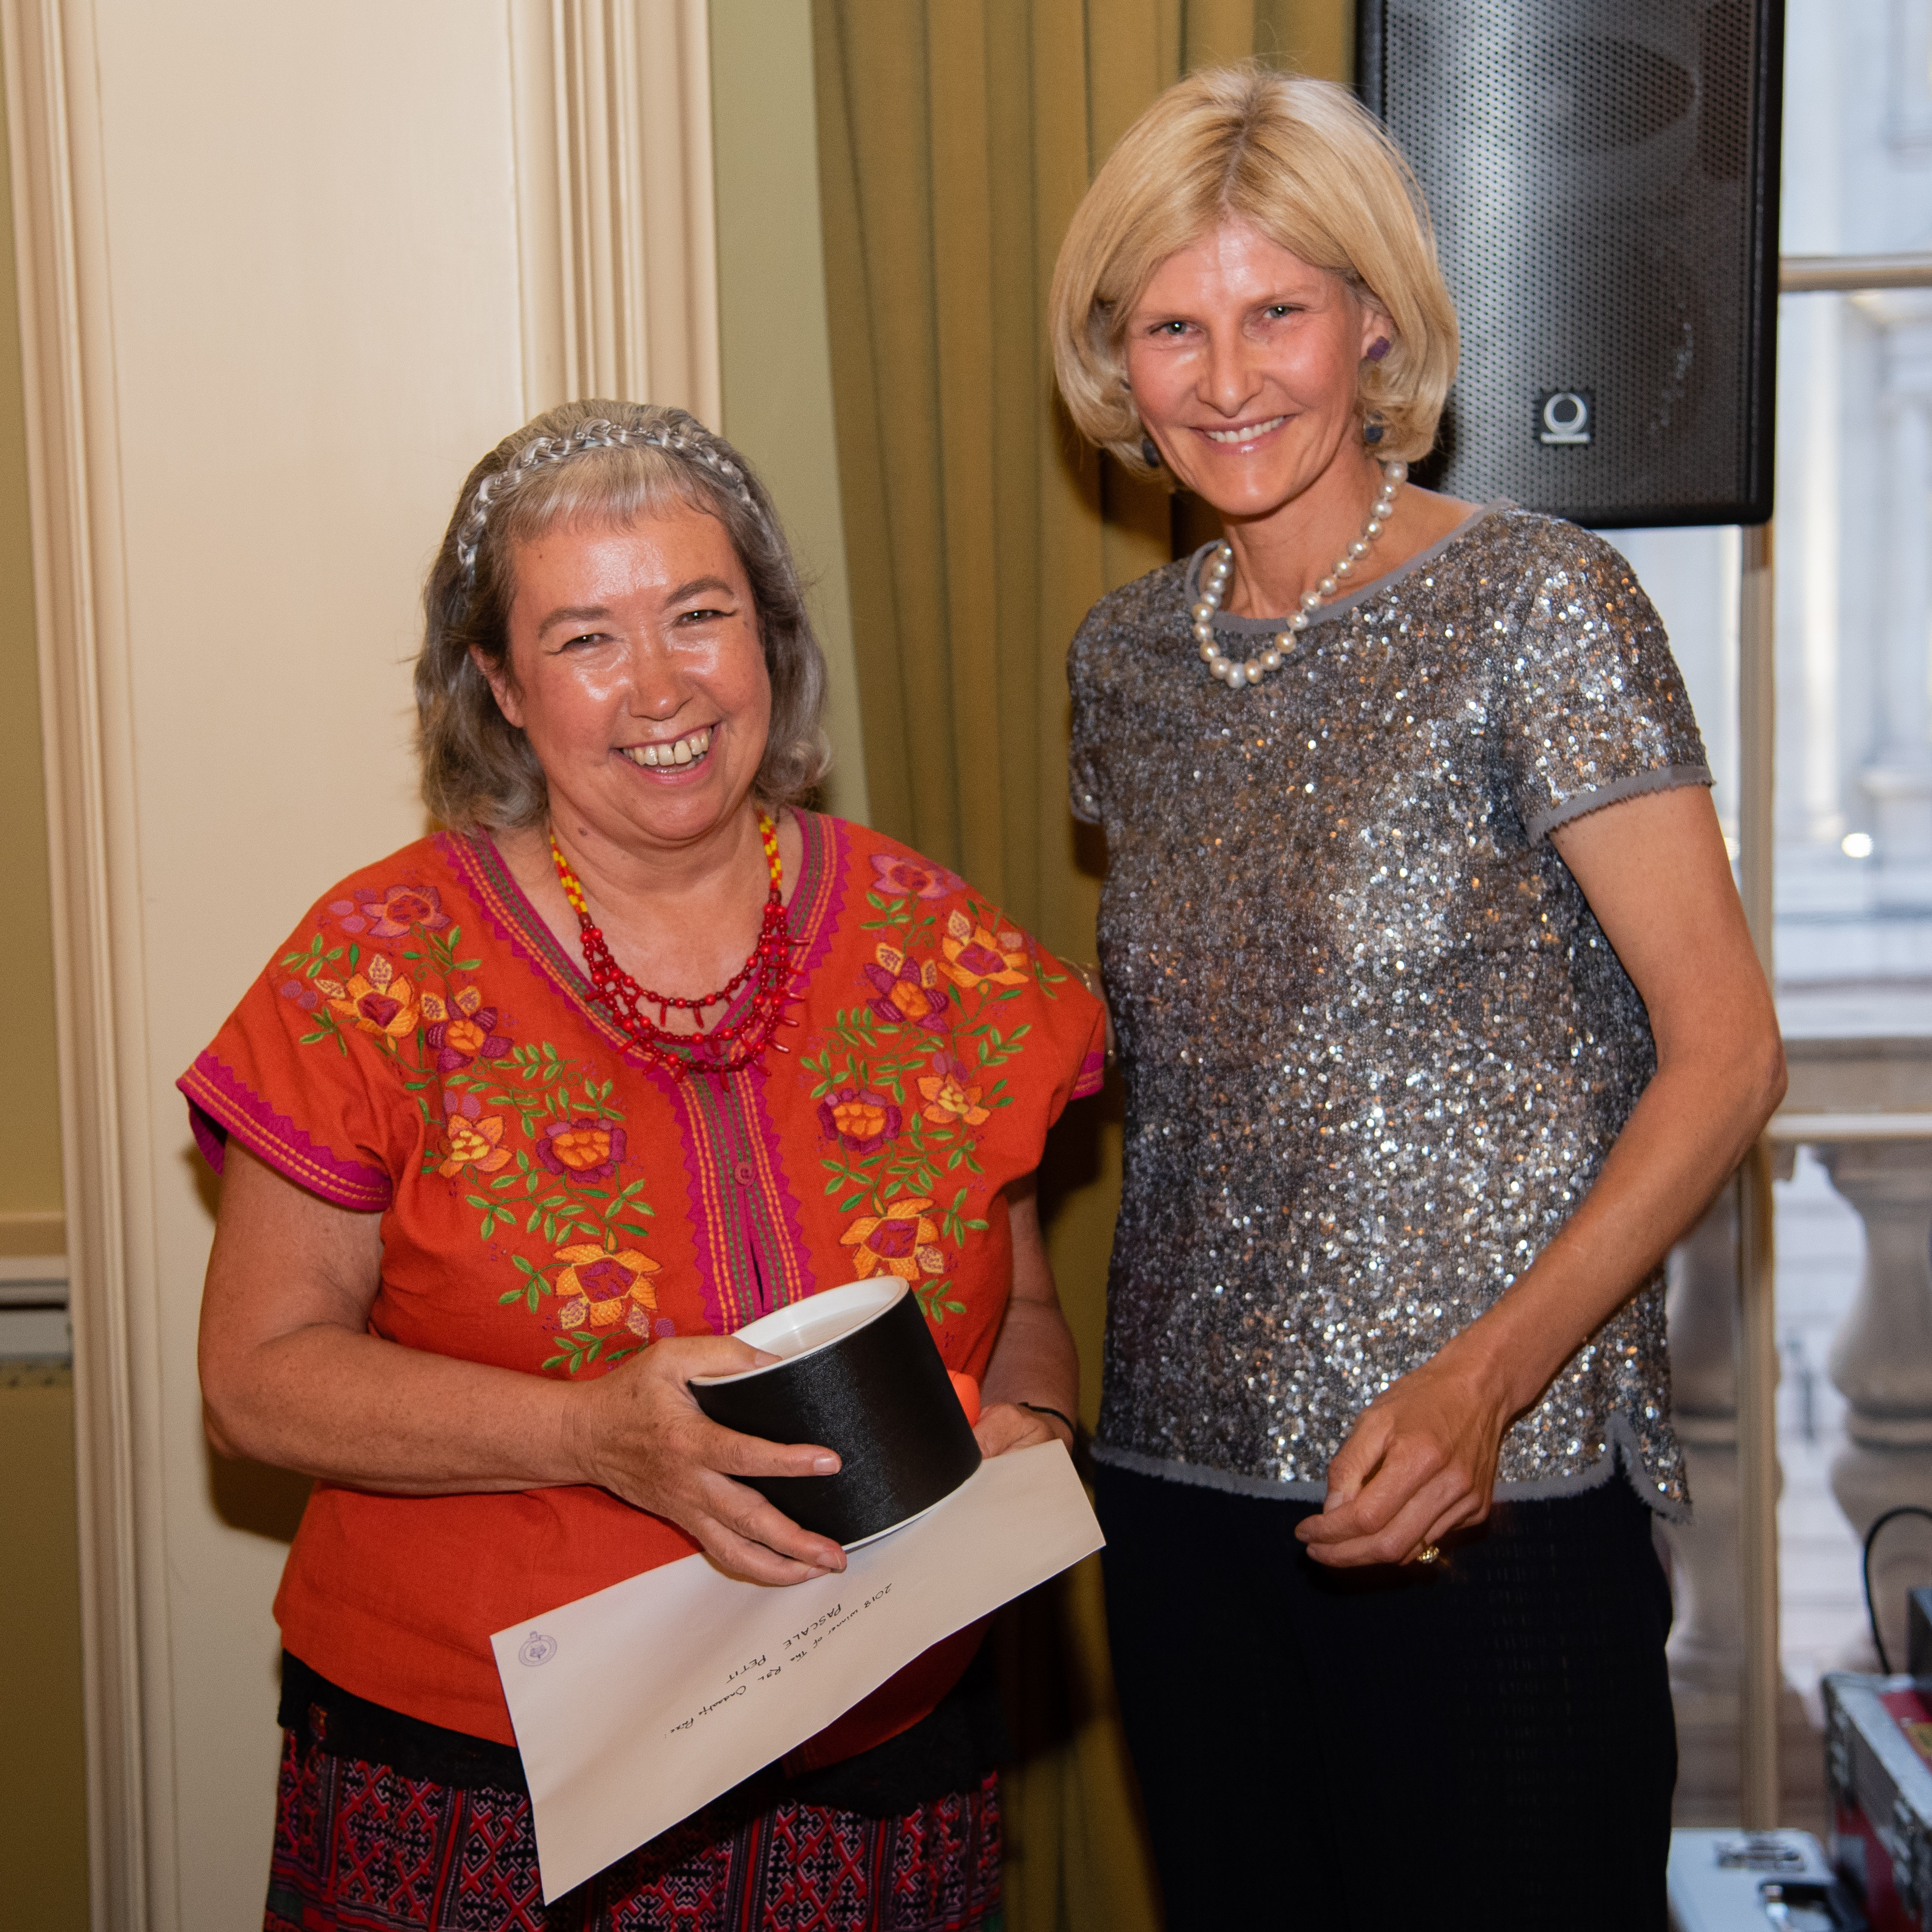 Pascale Petit, left, receives her award